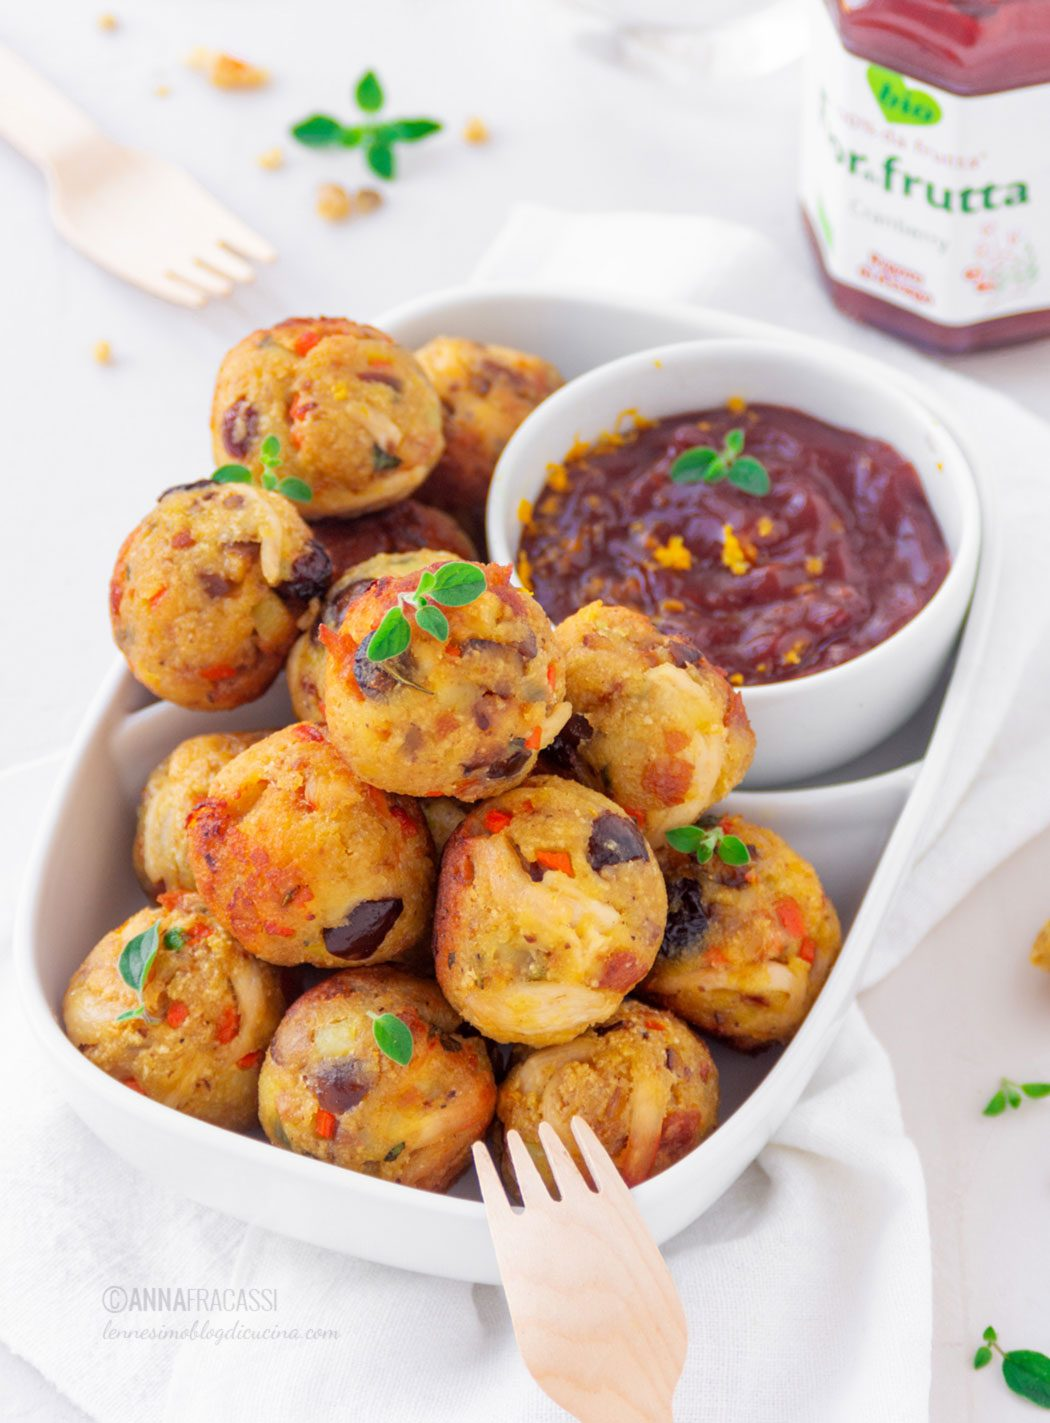 Thanksgiving turkey croquettes and cranberry sauce